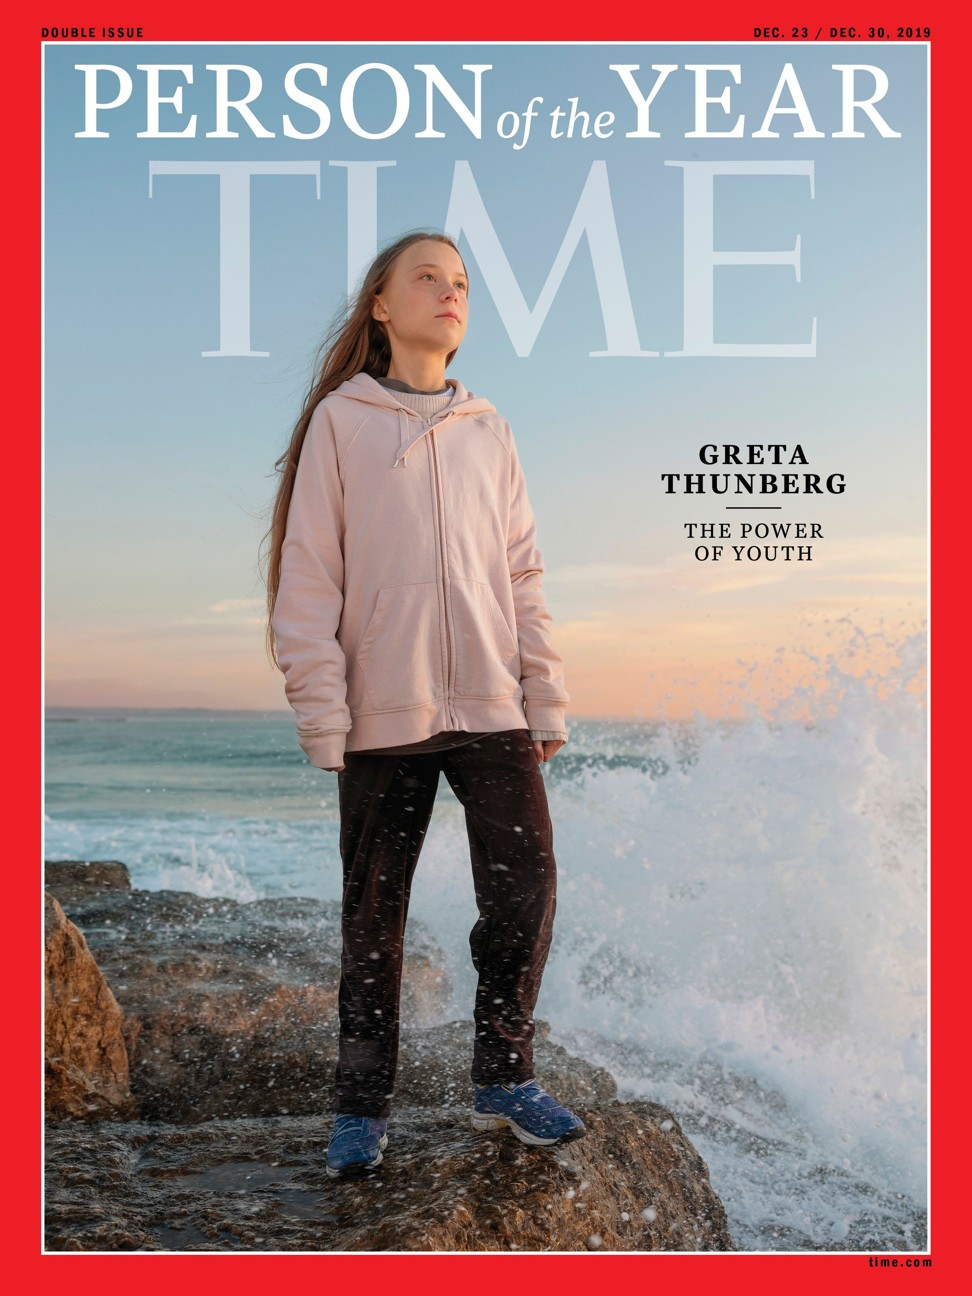 Time for world's leaders to pay attention, Greta Thunberg award is a reminder they work for us